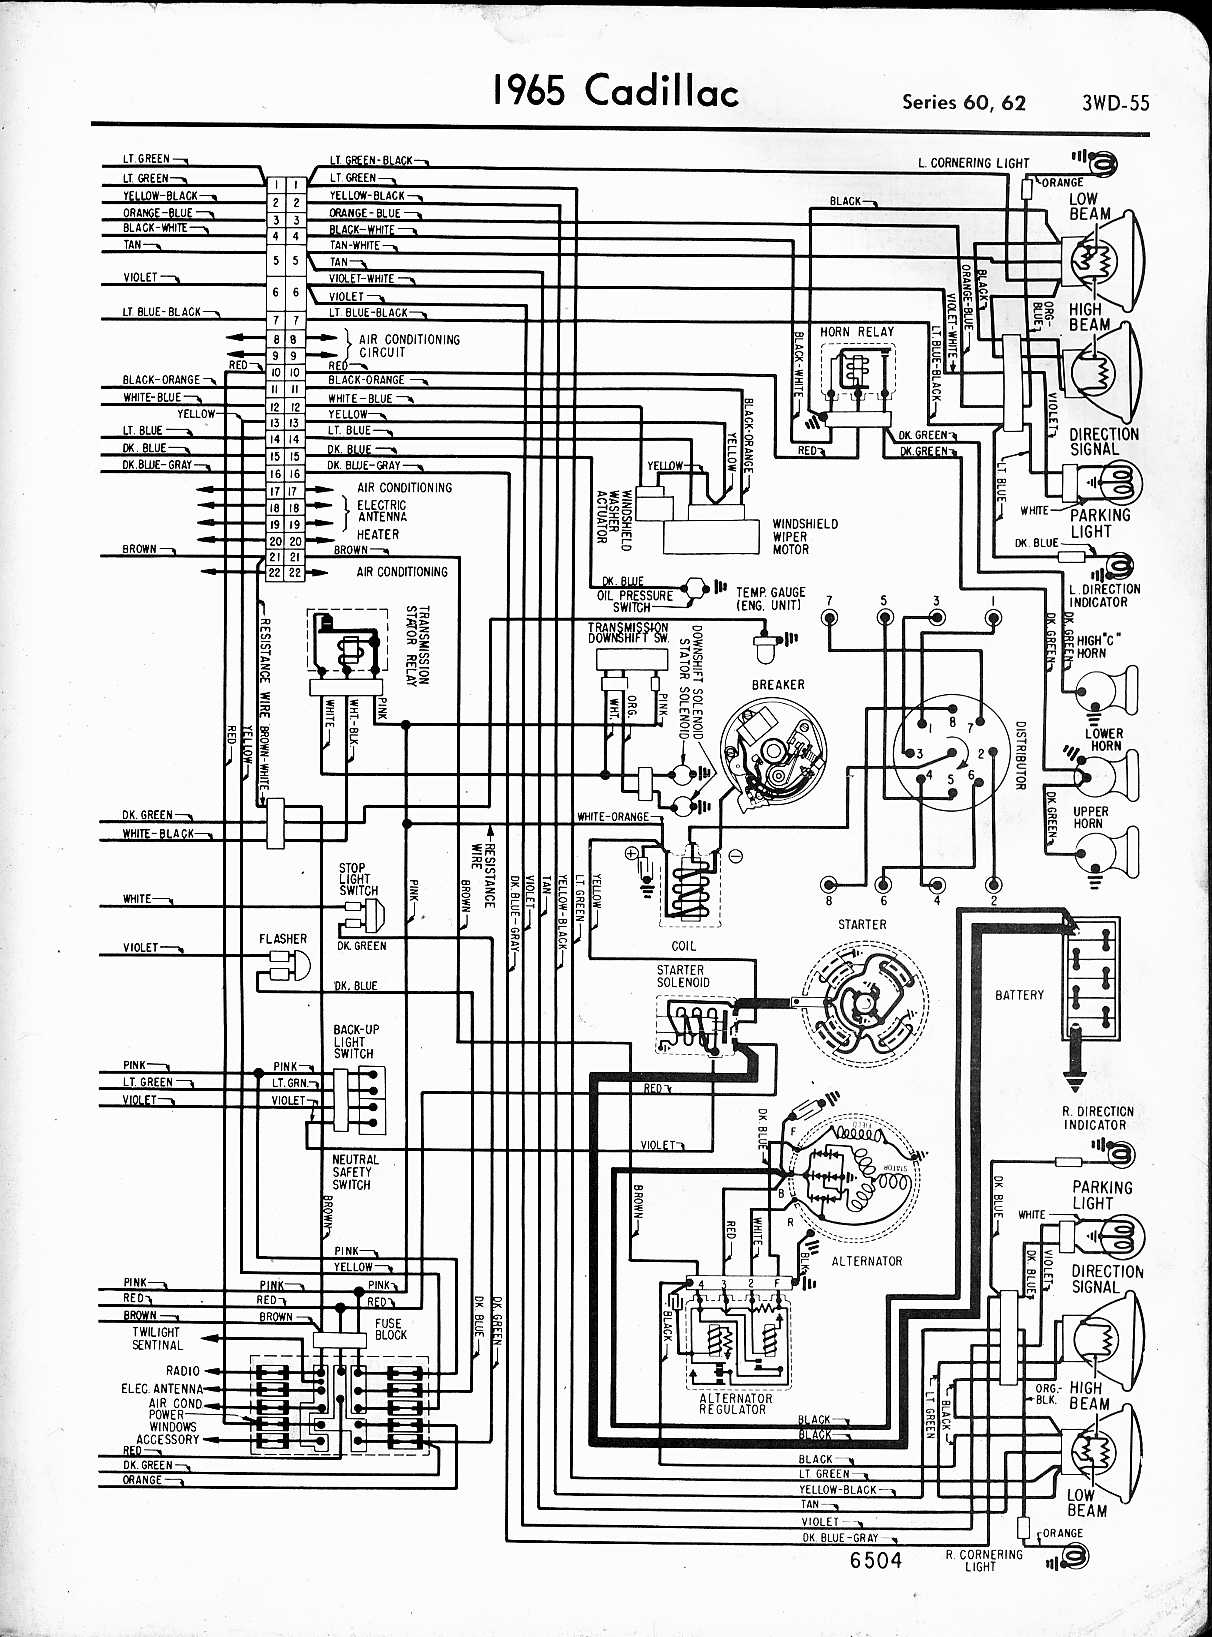 Chrysler Sebring Power Window Wiring Diagram On Wiring Diagrams For